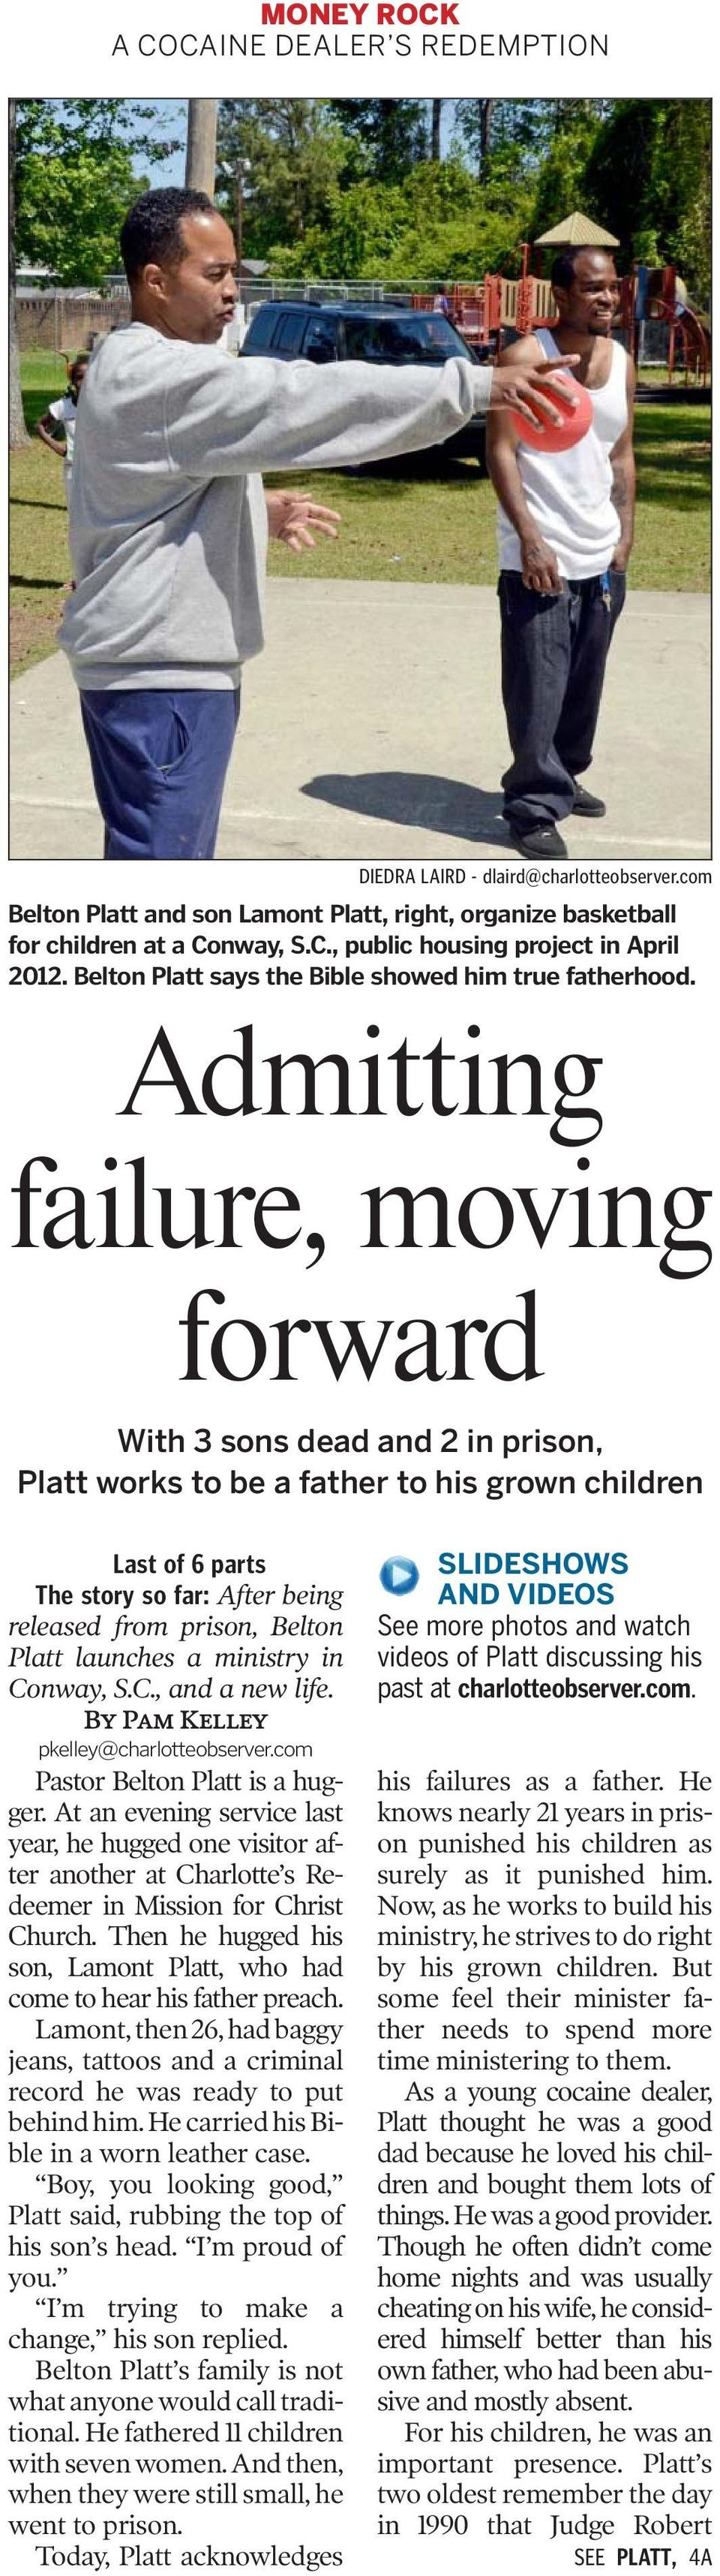 Admitting failure, moving forward With 3 sons dead and 2 in prison, Platt works to be a father to his grown children Last of 6 parts The story so far: After being released from prison, Belton Platt